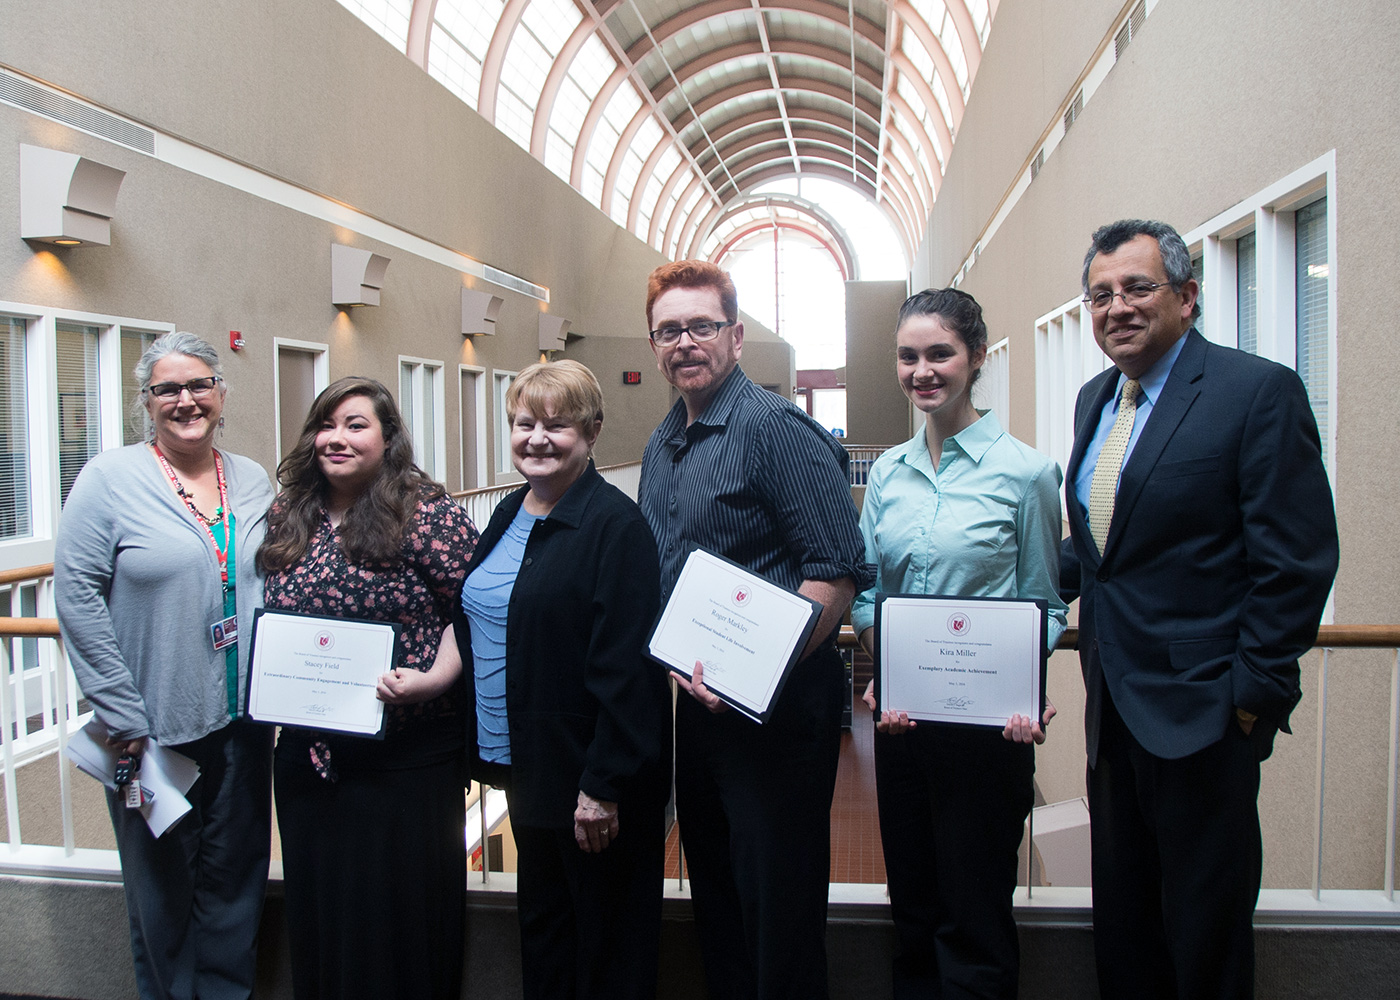 Student Life Committee Recognizes Stacey Field, Roger Markley, Kira Miller